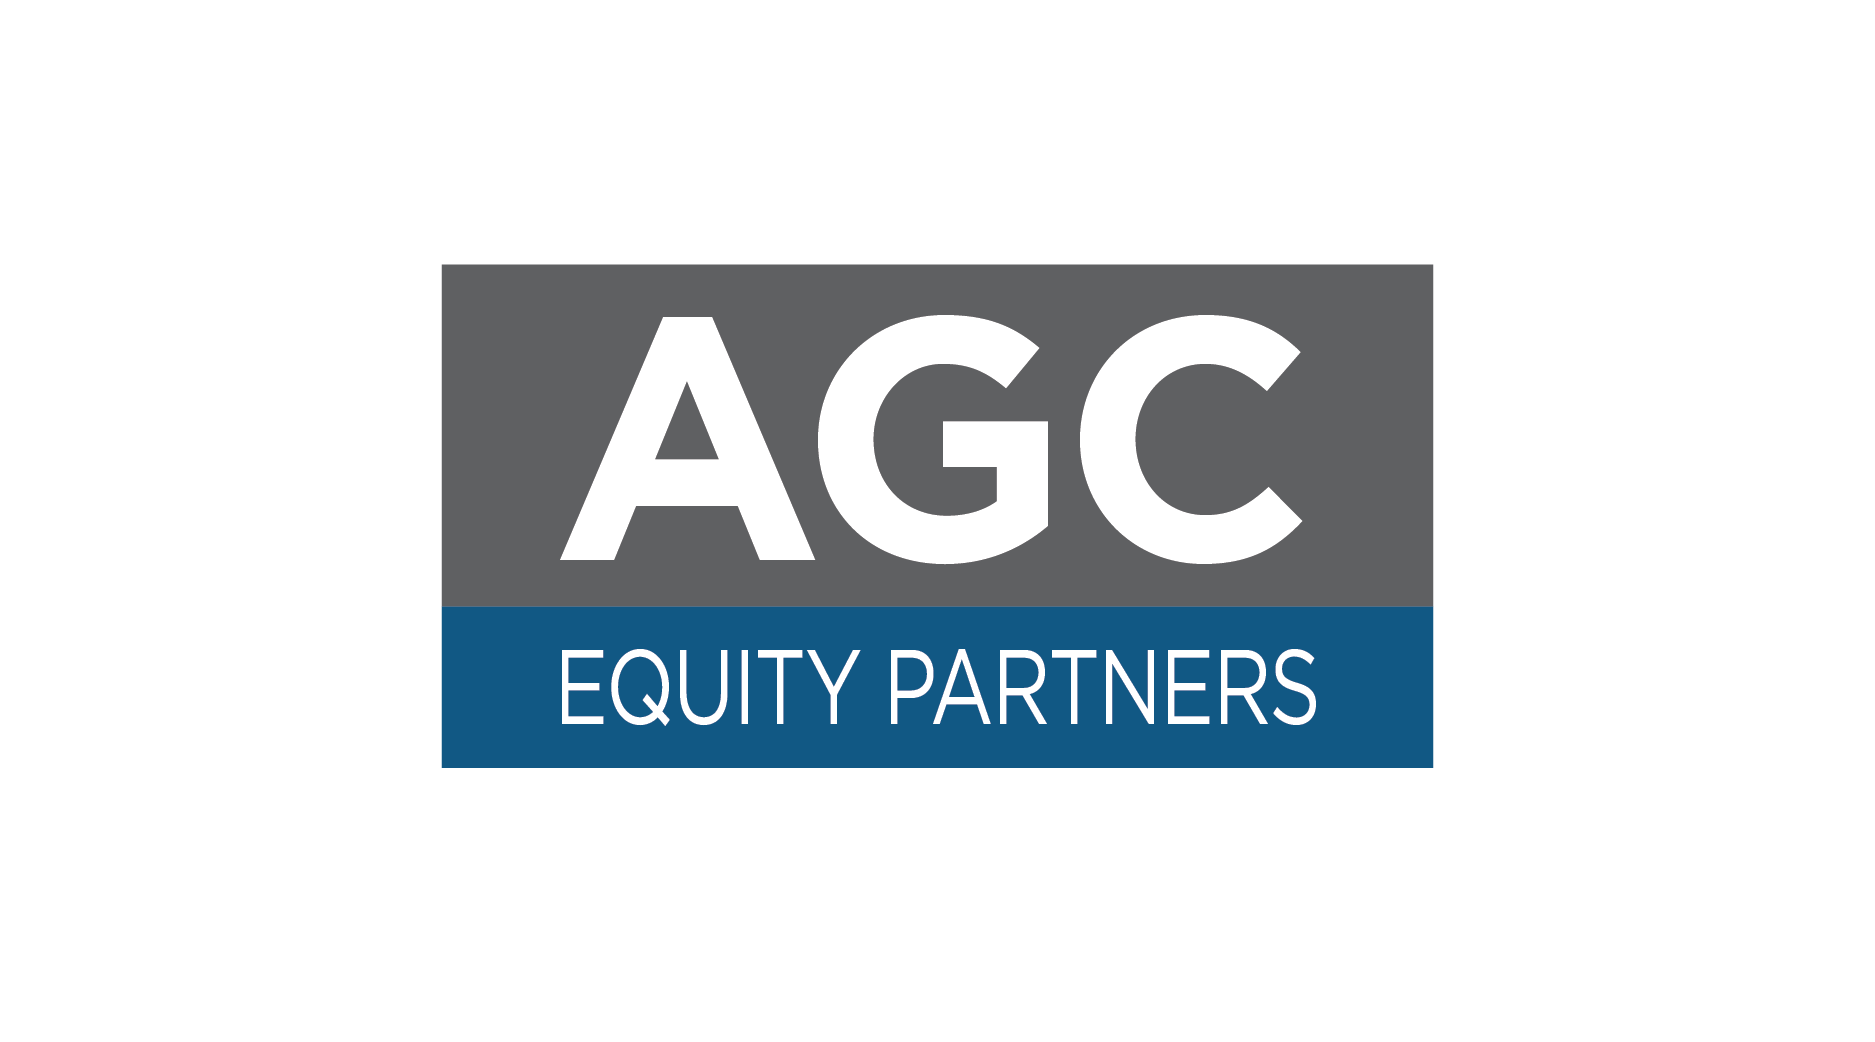 logo_agc-equity-partners.png